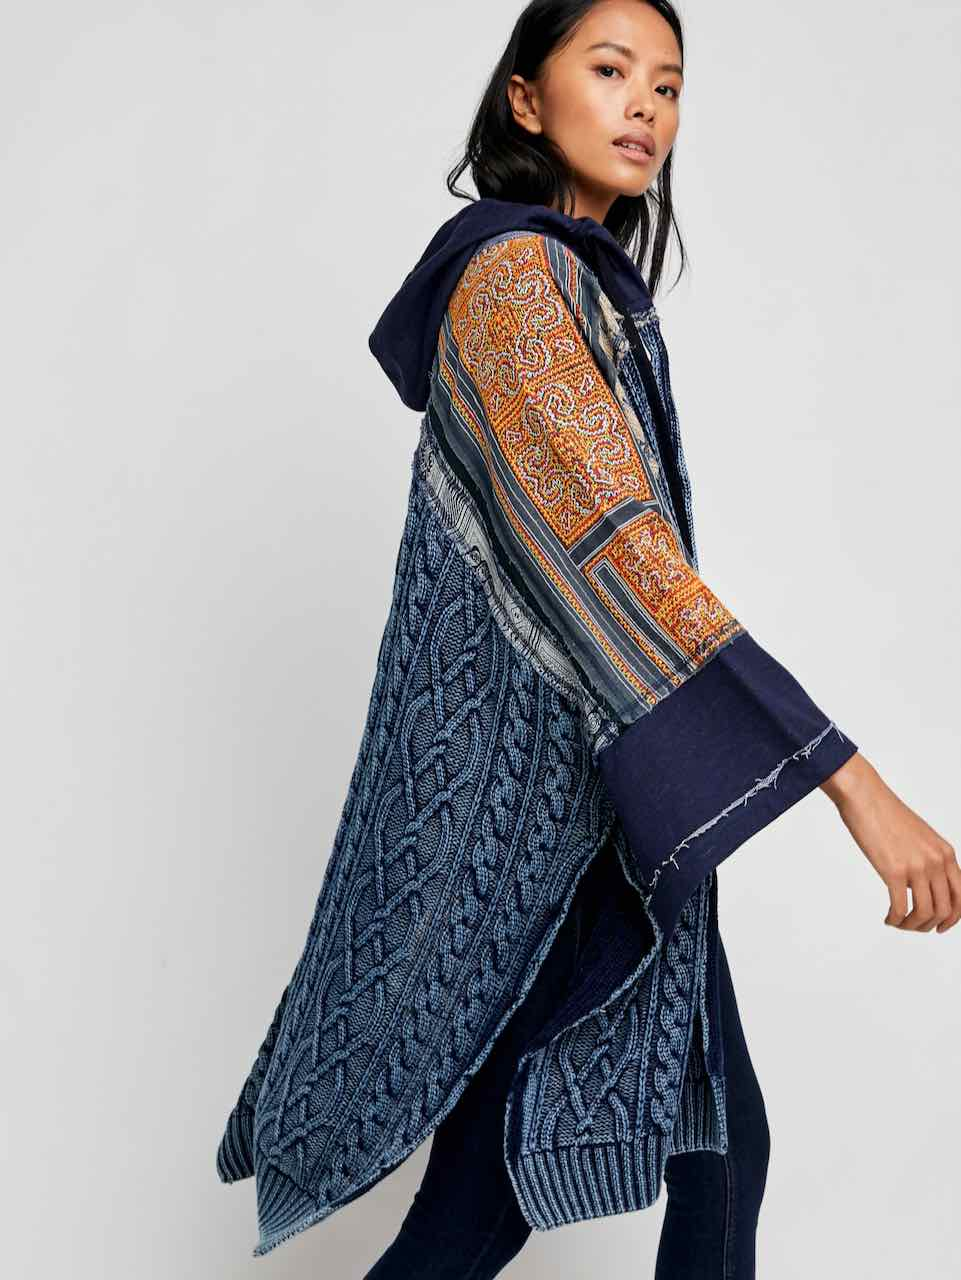 Tunic Indigo Textile Poncho Gift for Her P1938 One Size Fits All